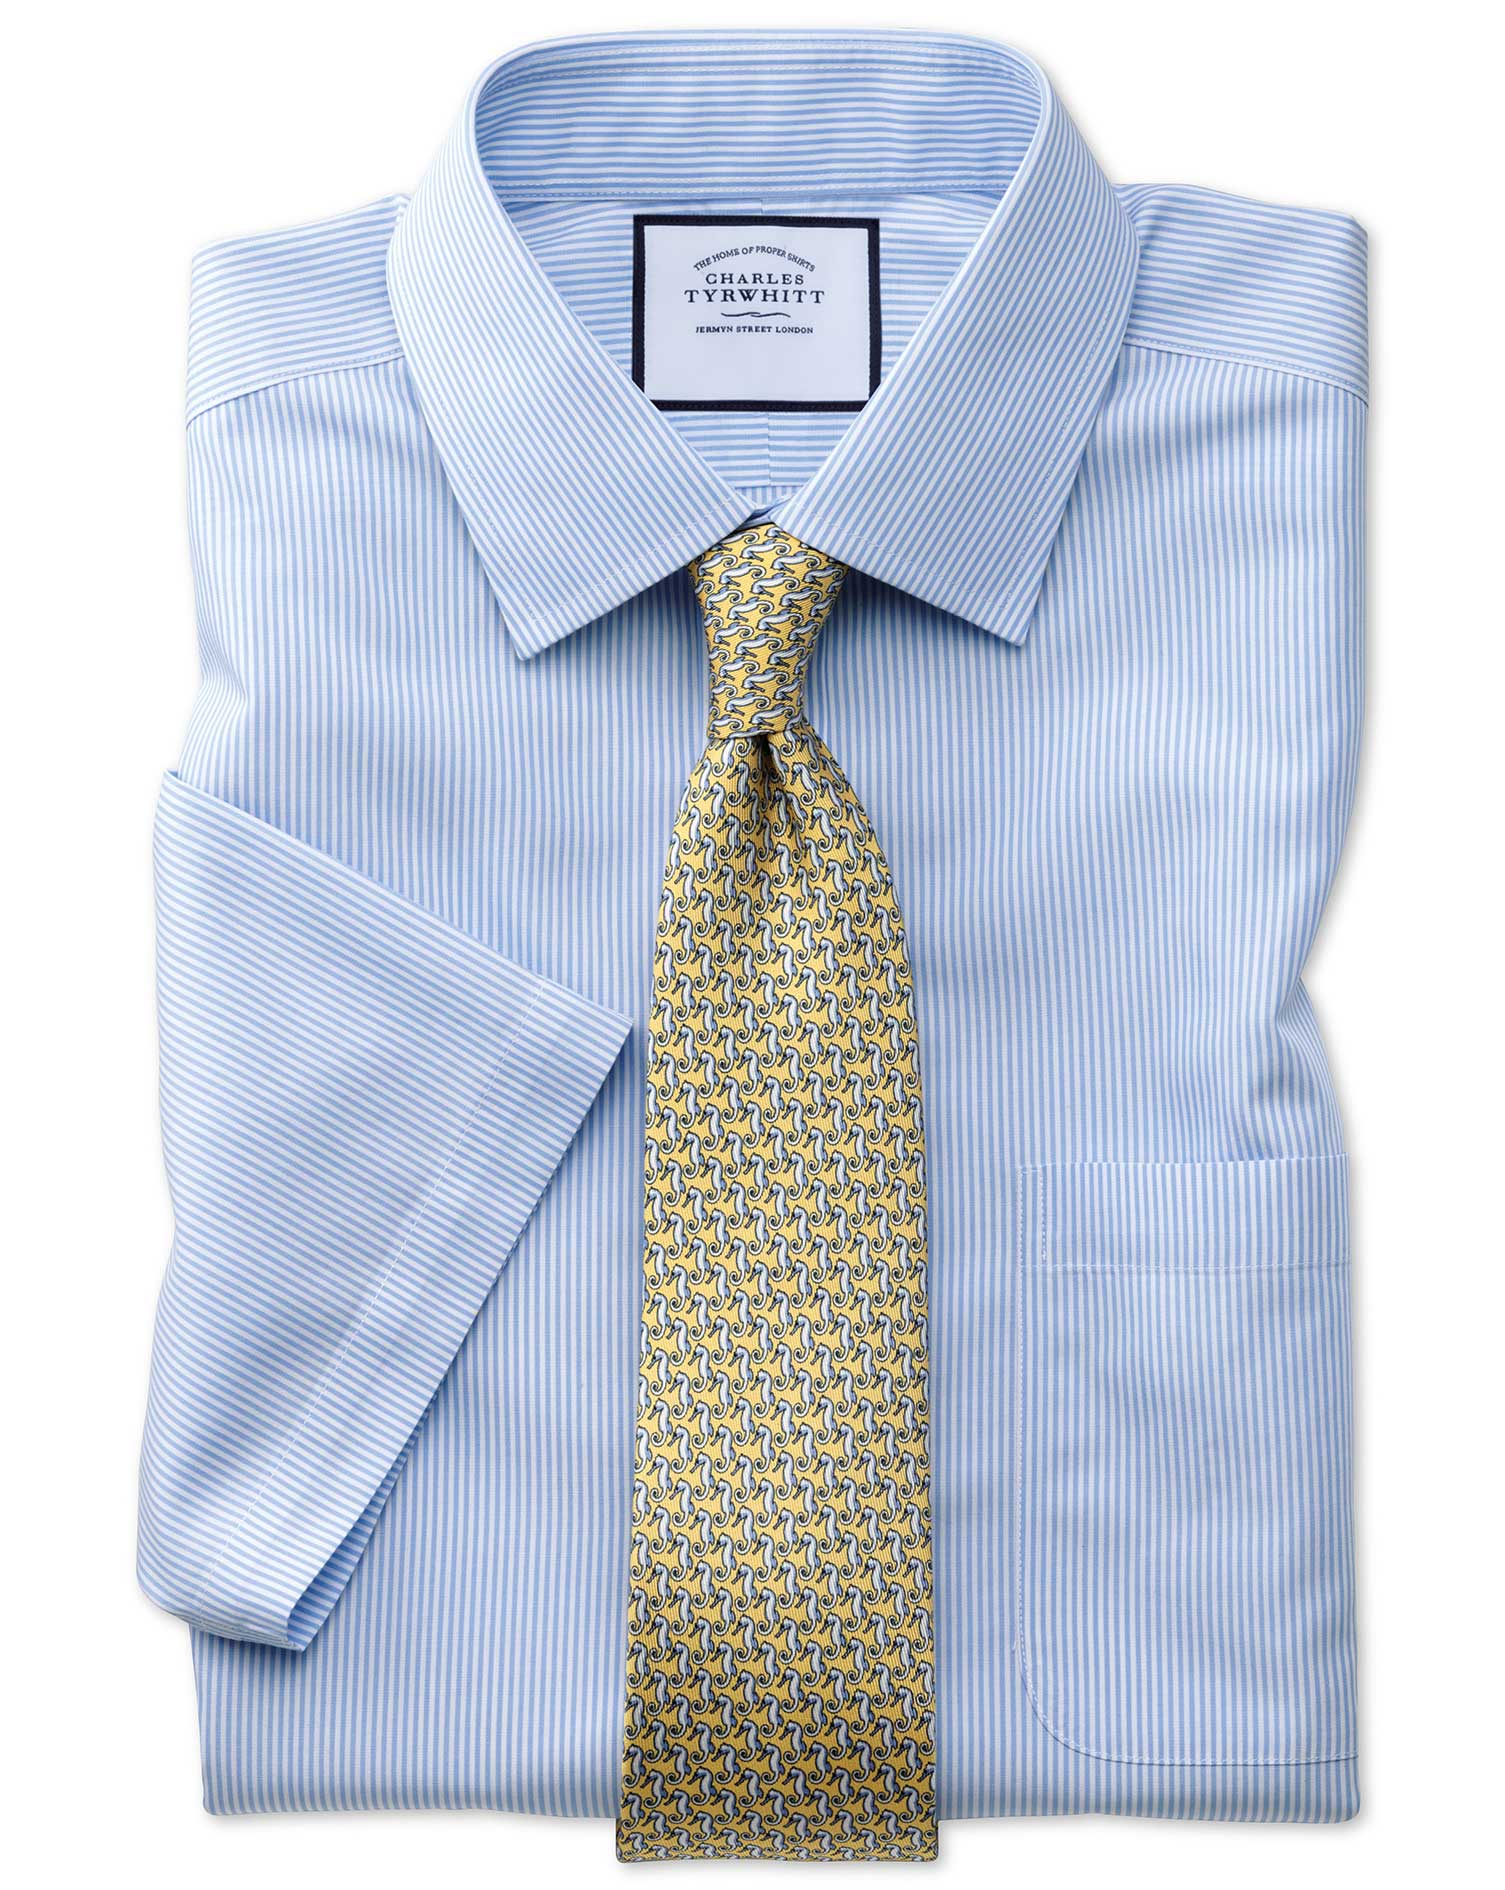 Classic Fit Non-Iron Bengal Stripe Short Sleeve Sky Blue Cotton Formal Shirt Size 18/Short by Charle